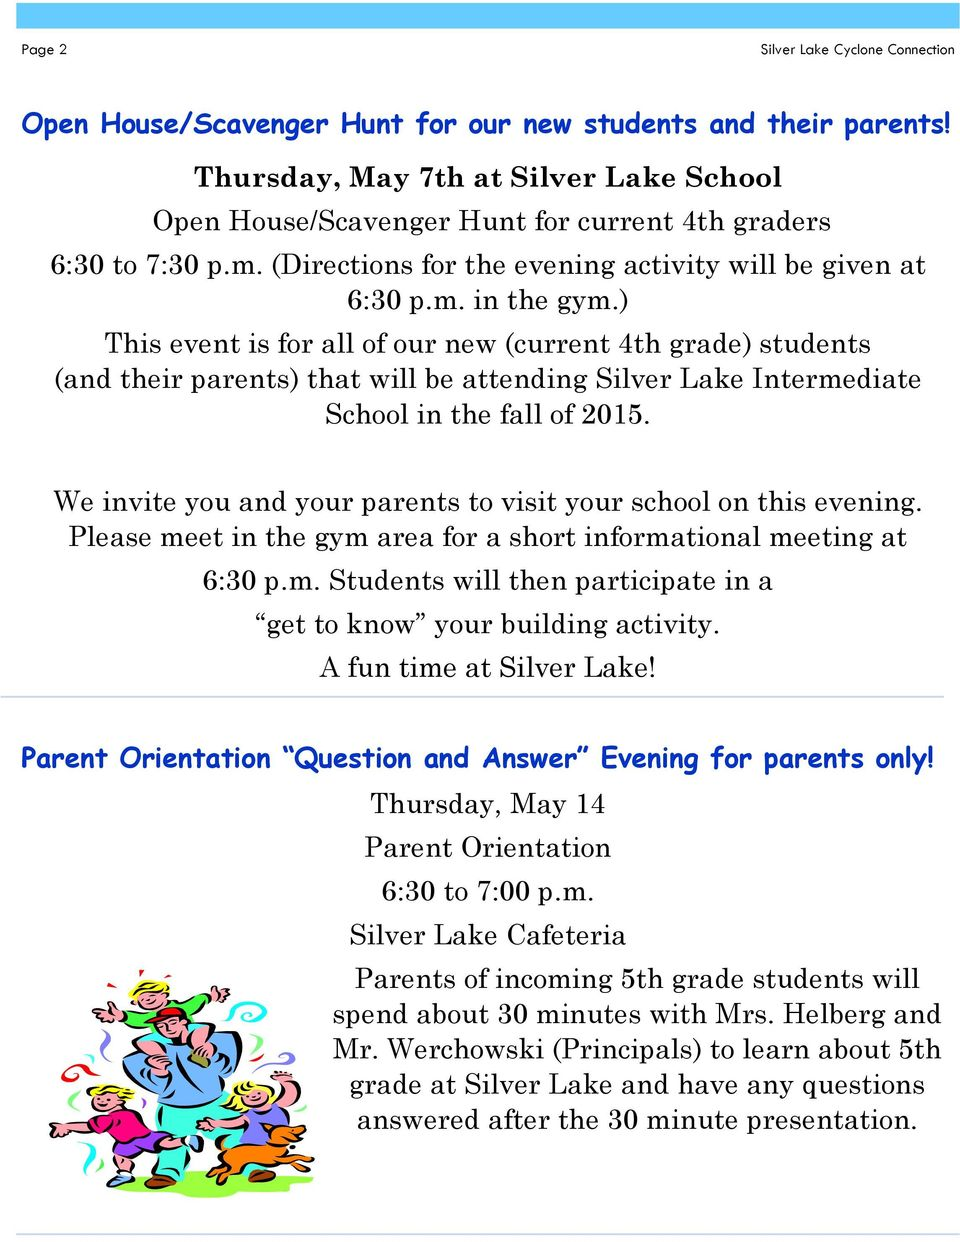 ) This event is for all of our new (current 4th grade) students (and their parents) that will be attending Silver Lake Intermediate School in the fall of 2015.